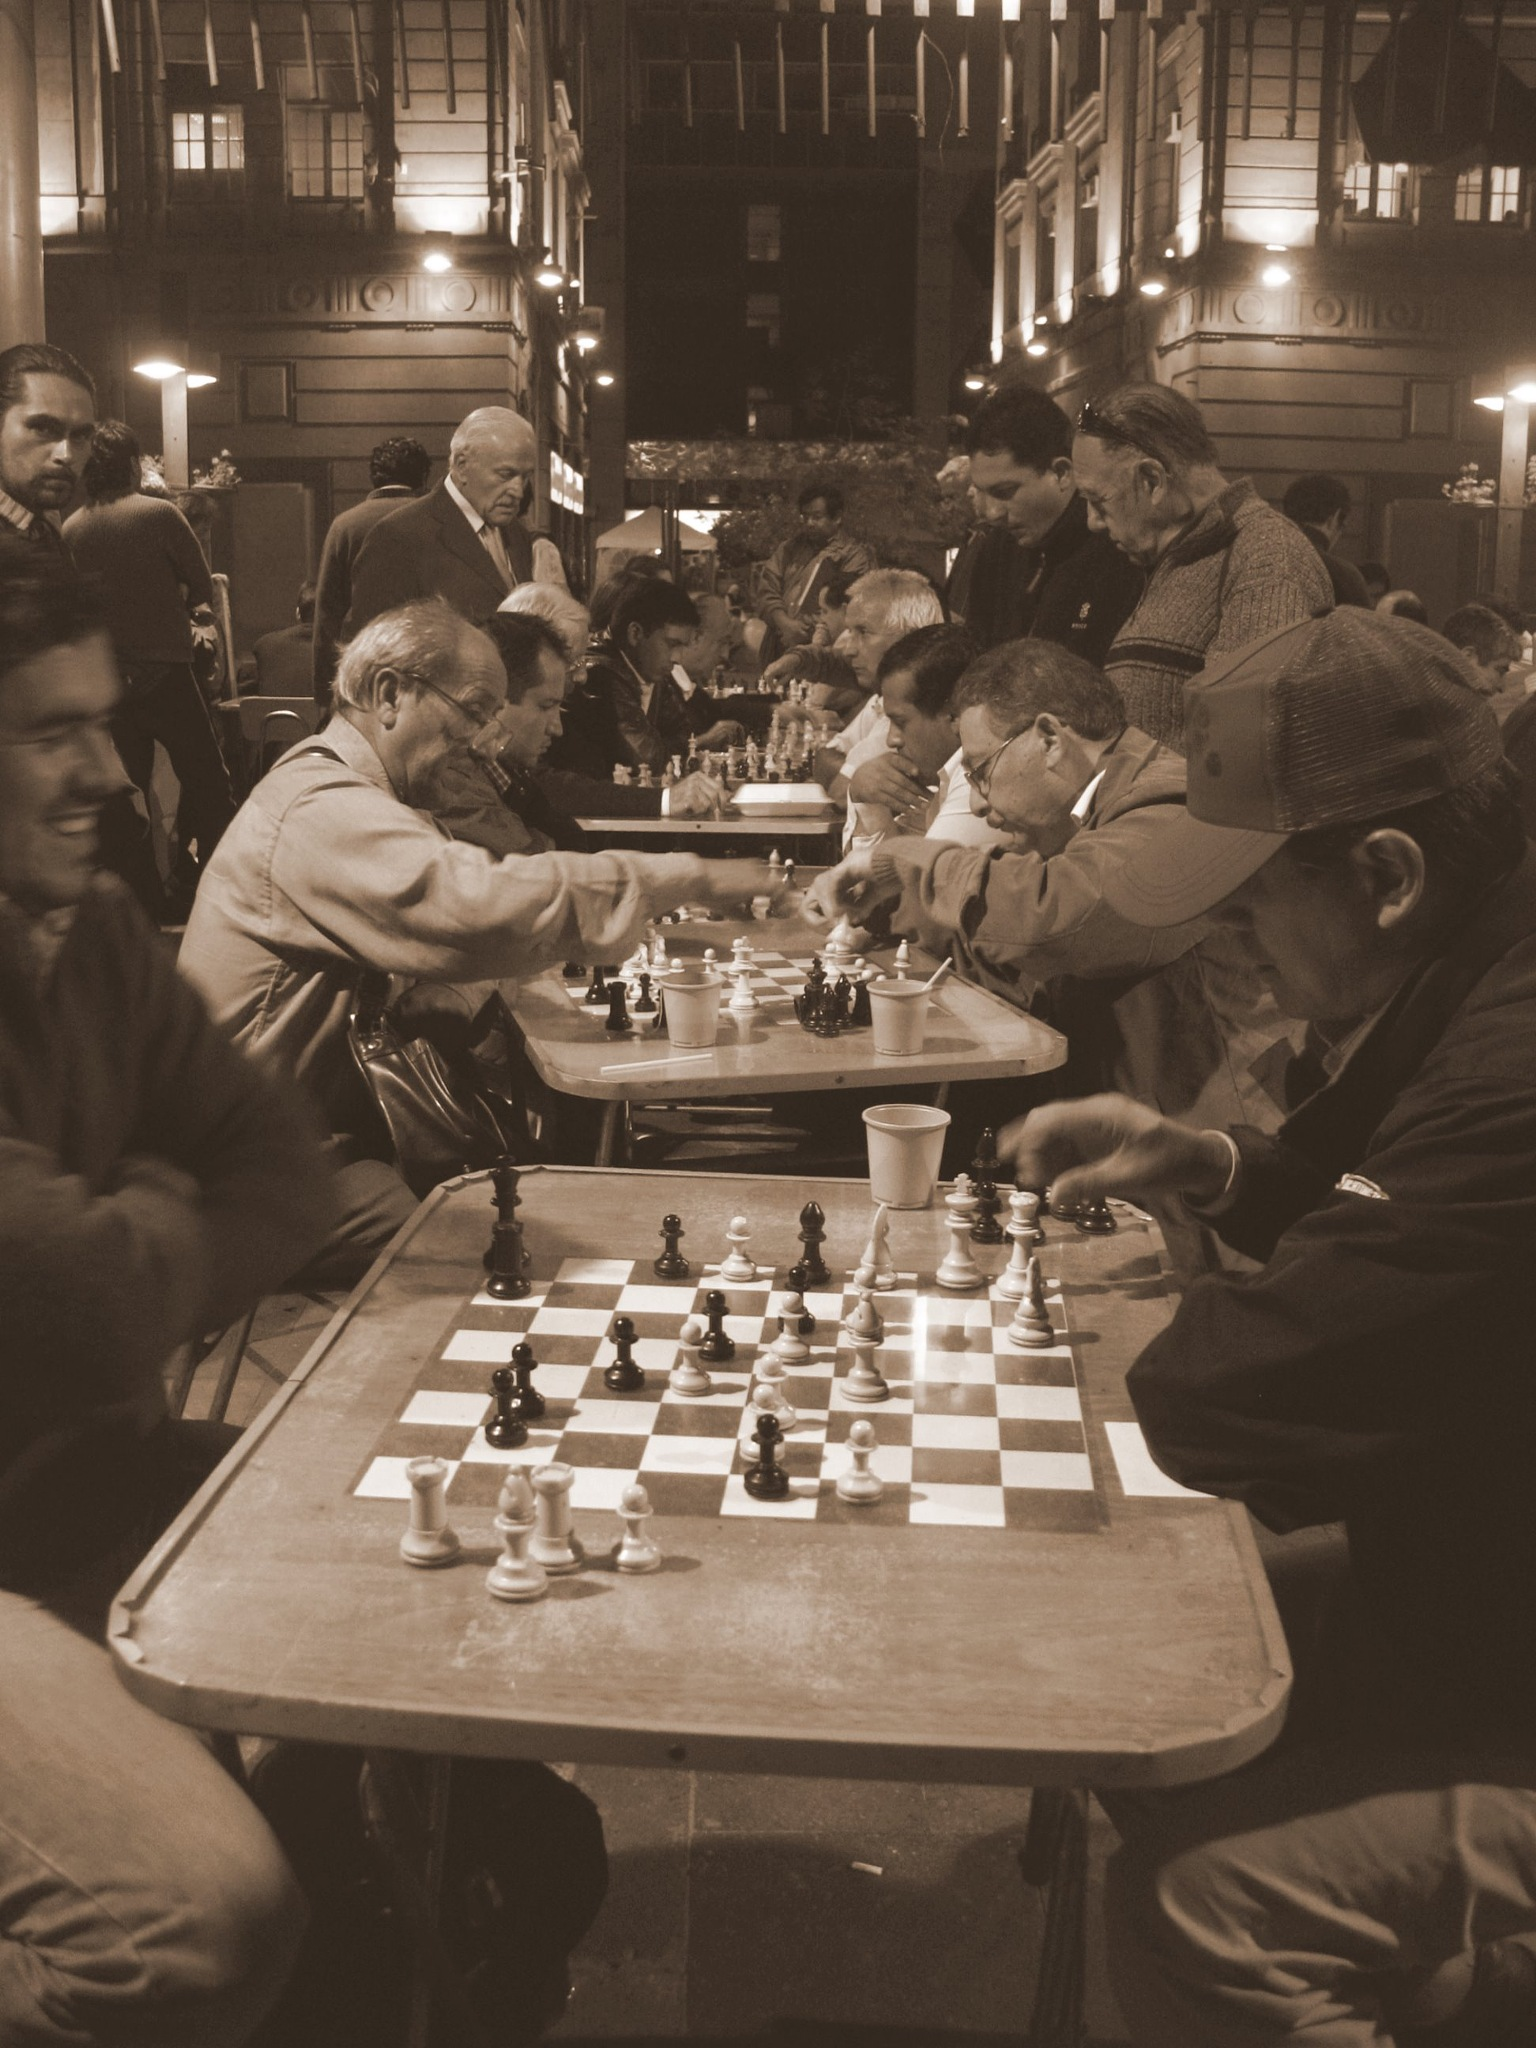 Chess in the main square, Santiago by adolfootarola